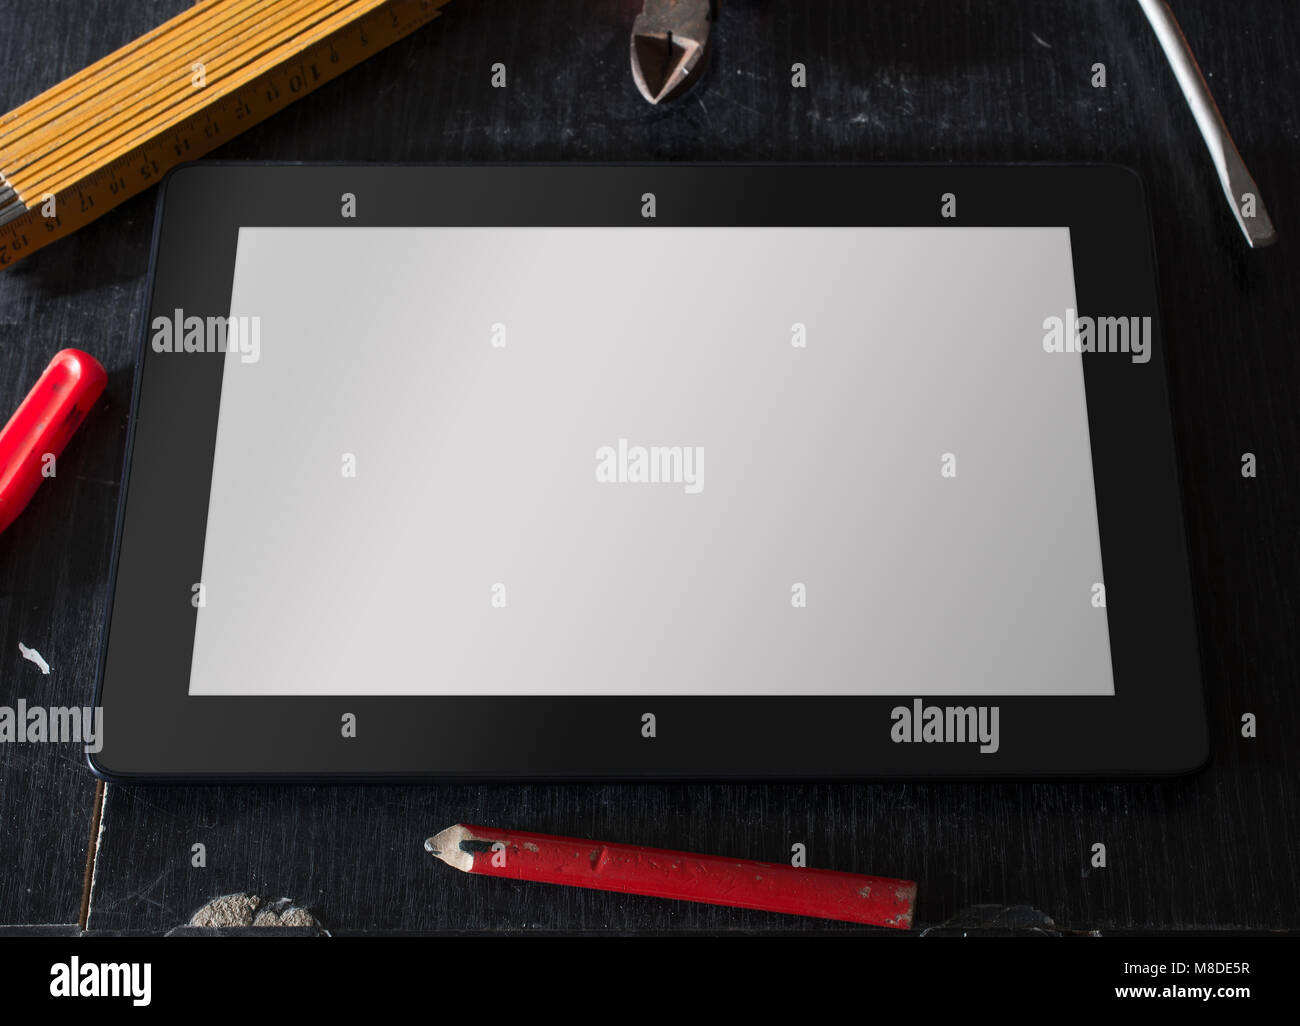 Tablet With Blank Screen Surrounded By Tools - Stock Image